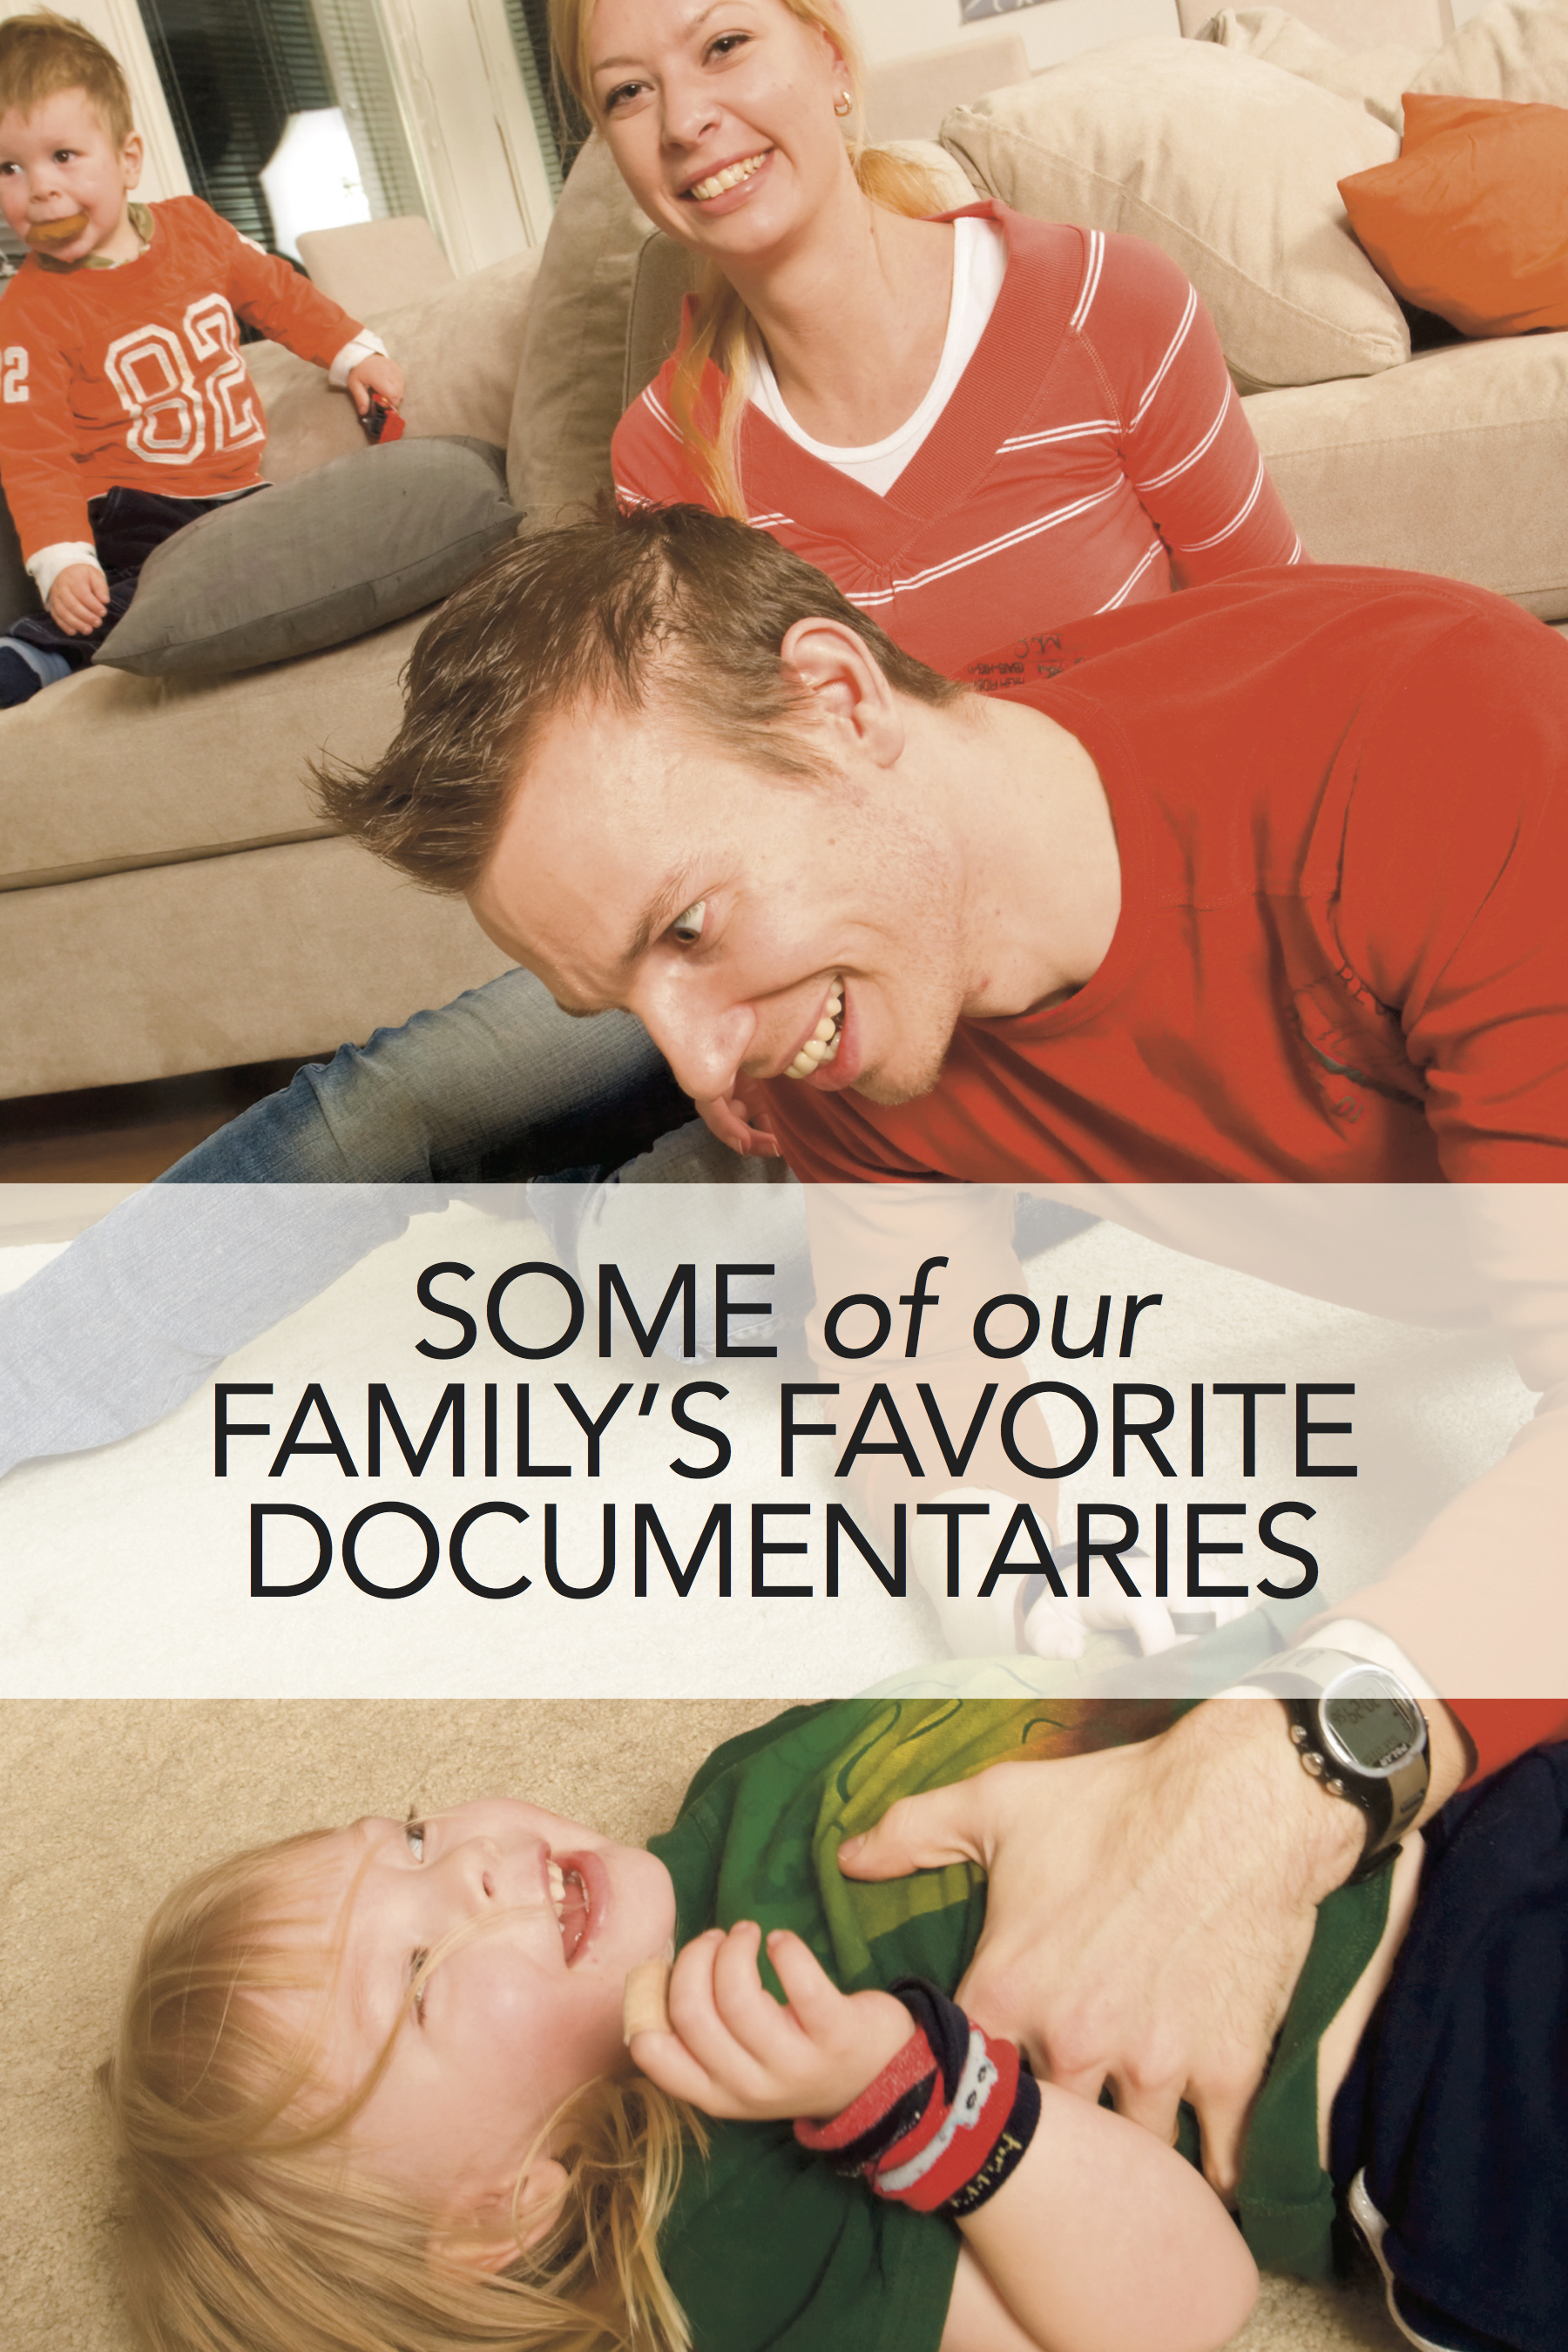 Family Time: A Few of Our Favorite Documentaries